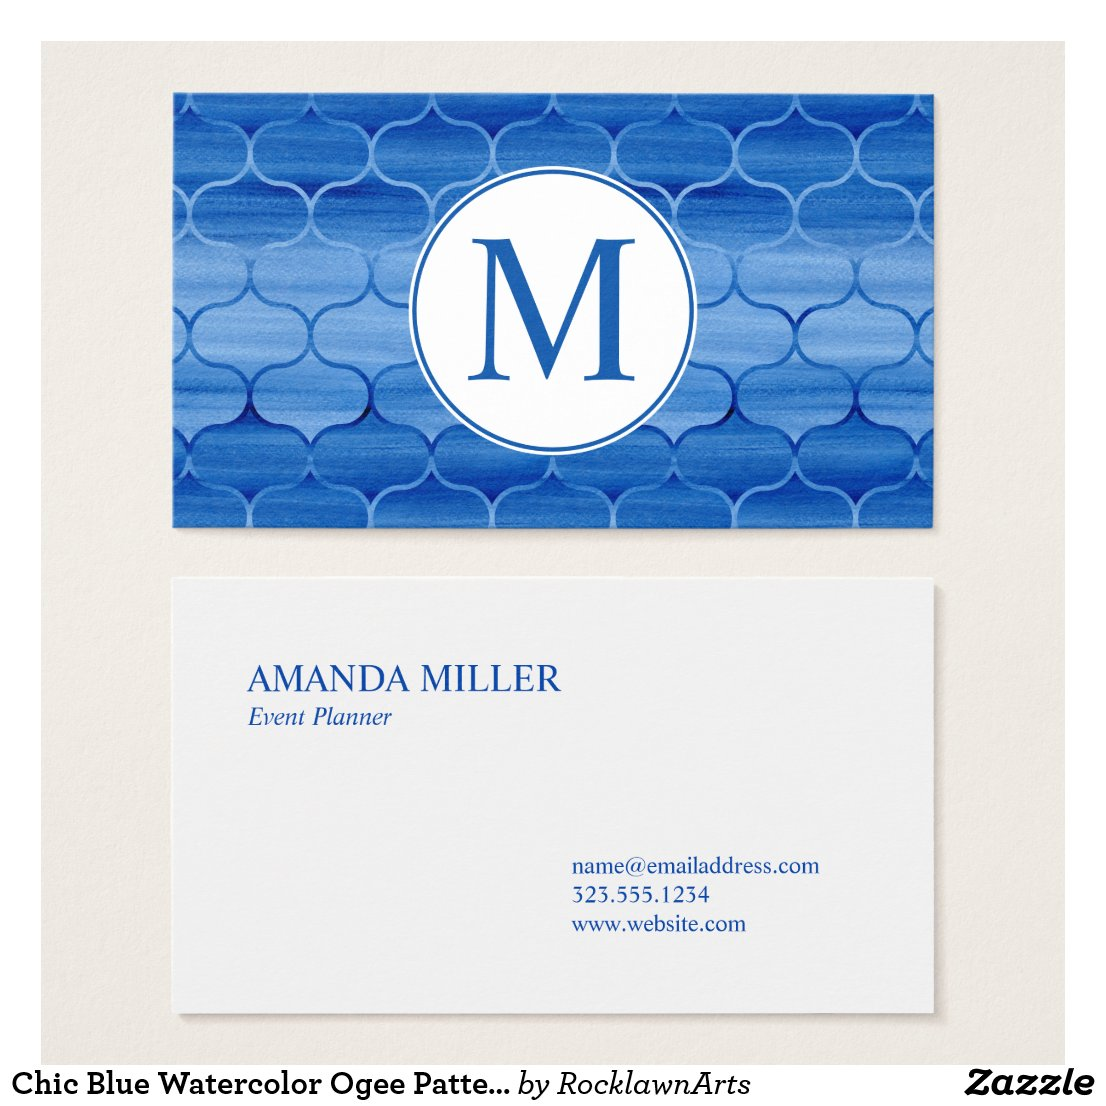 Chic Blue Watercolor Ogee Pattern with Monogram Business Card